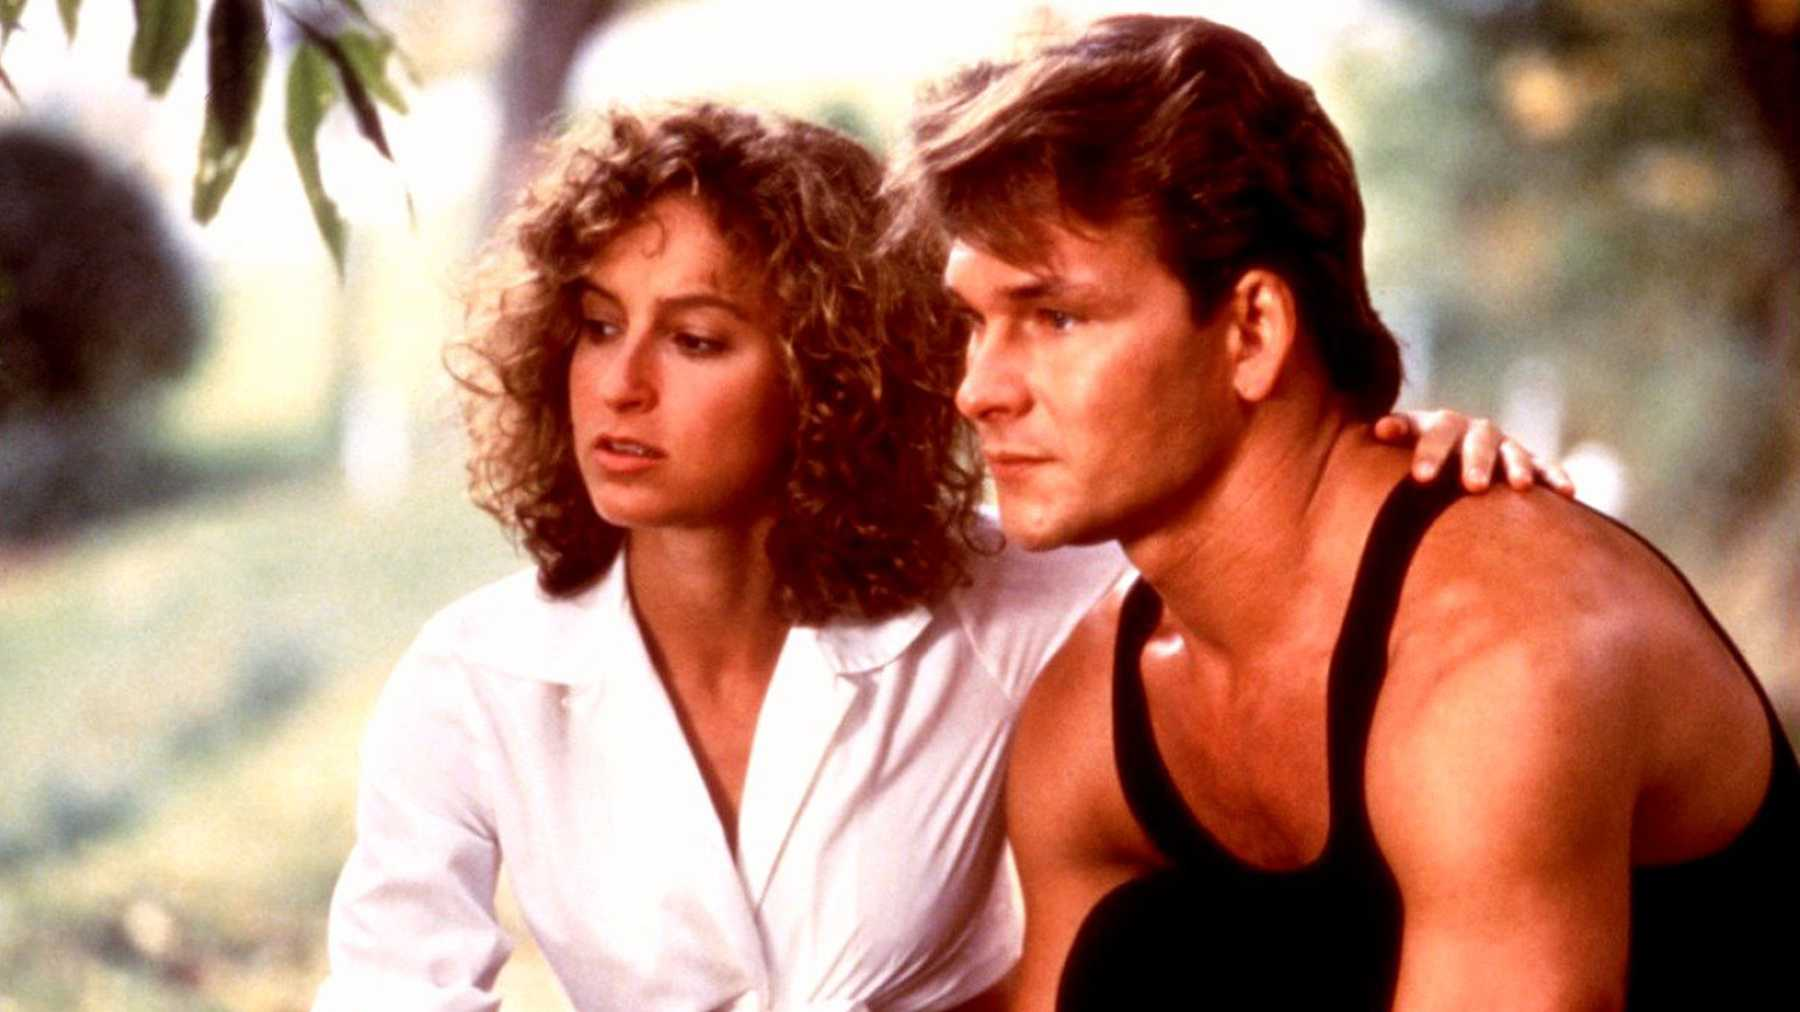 Dirty Dancing - Best Chick Flicks